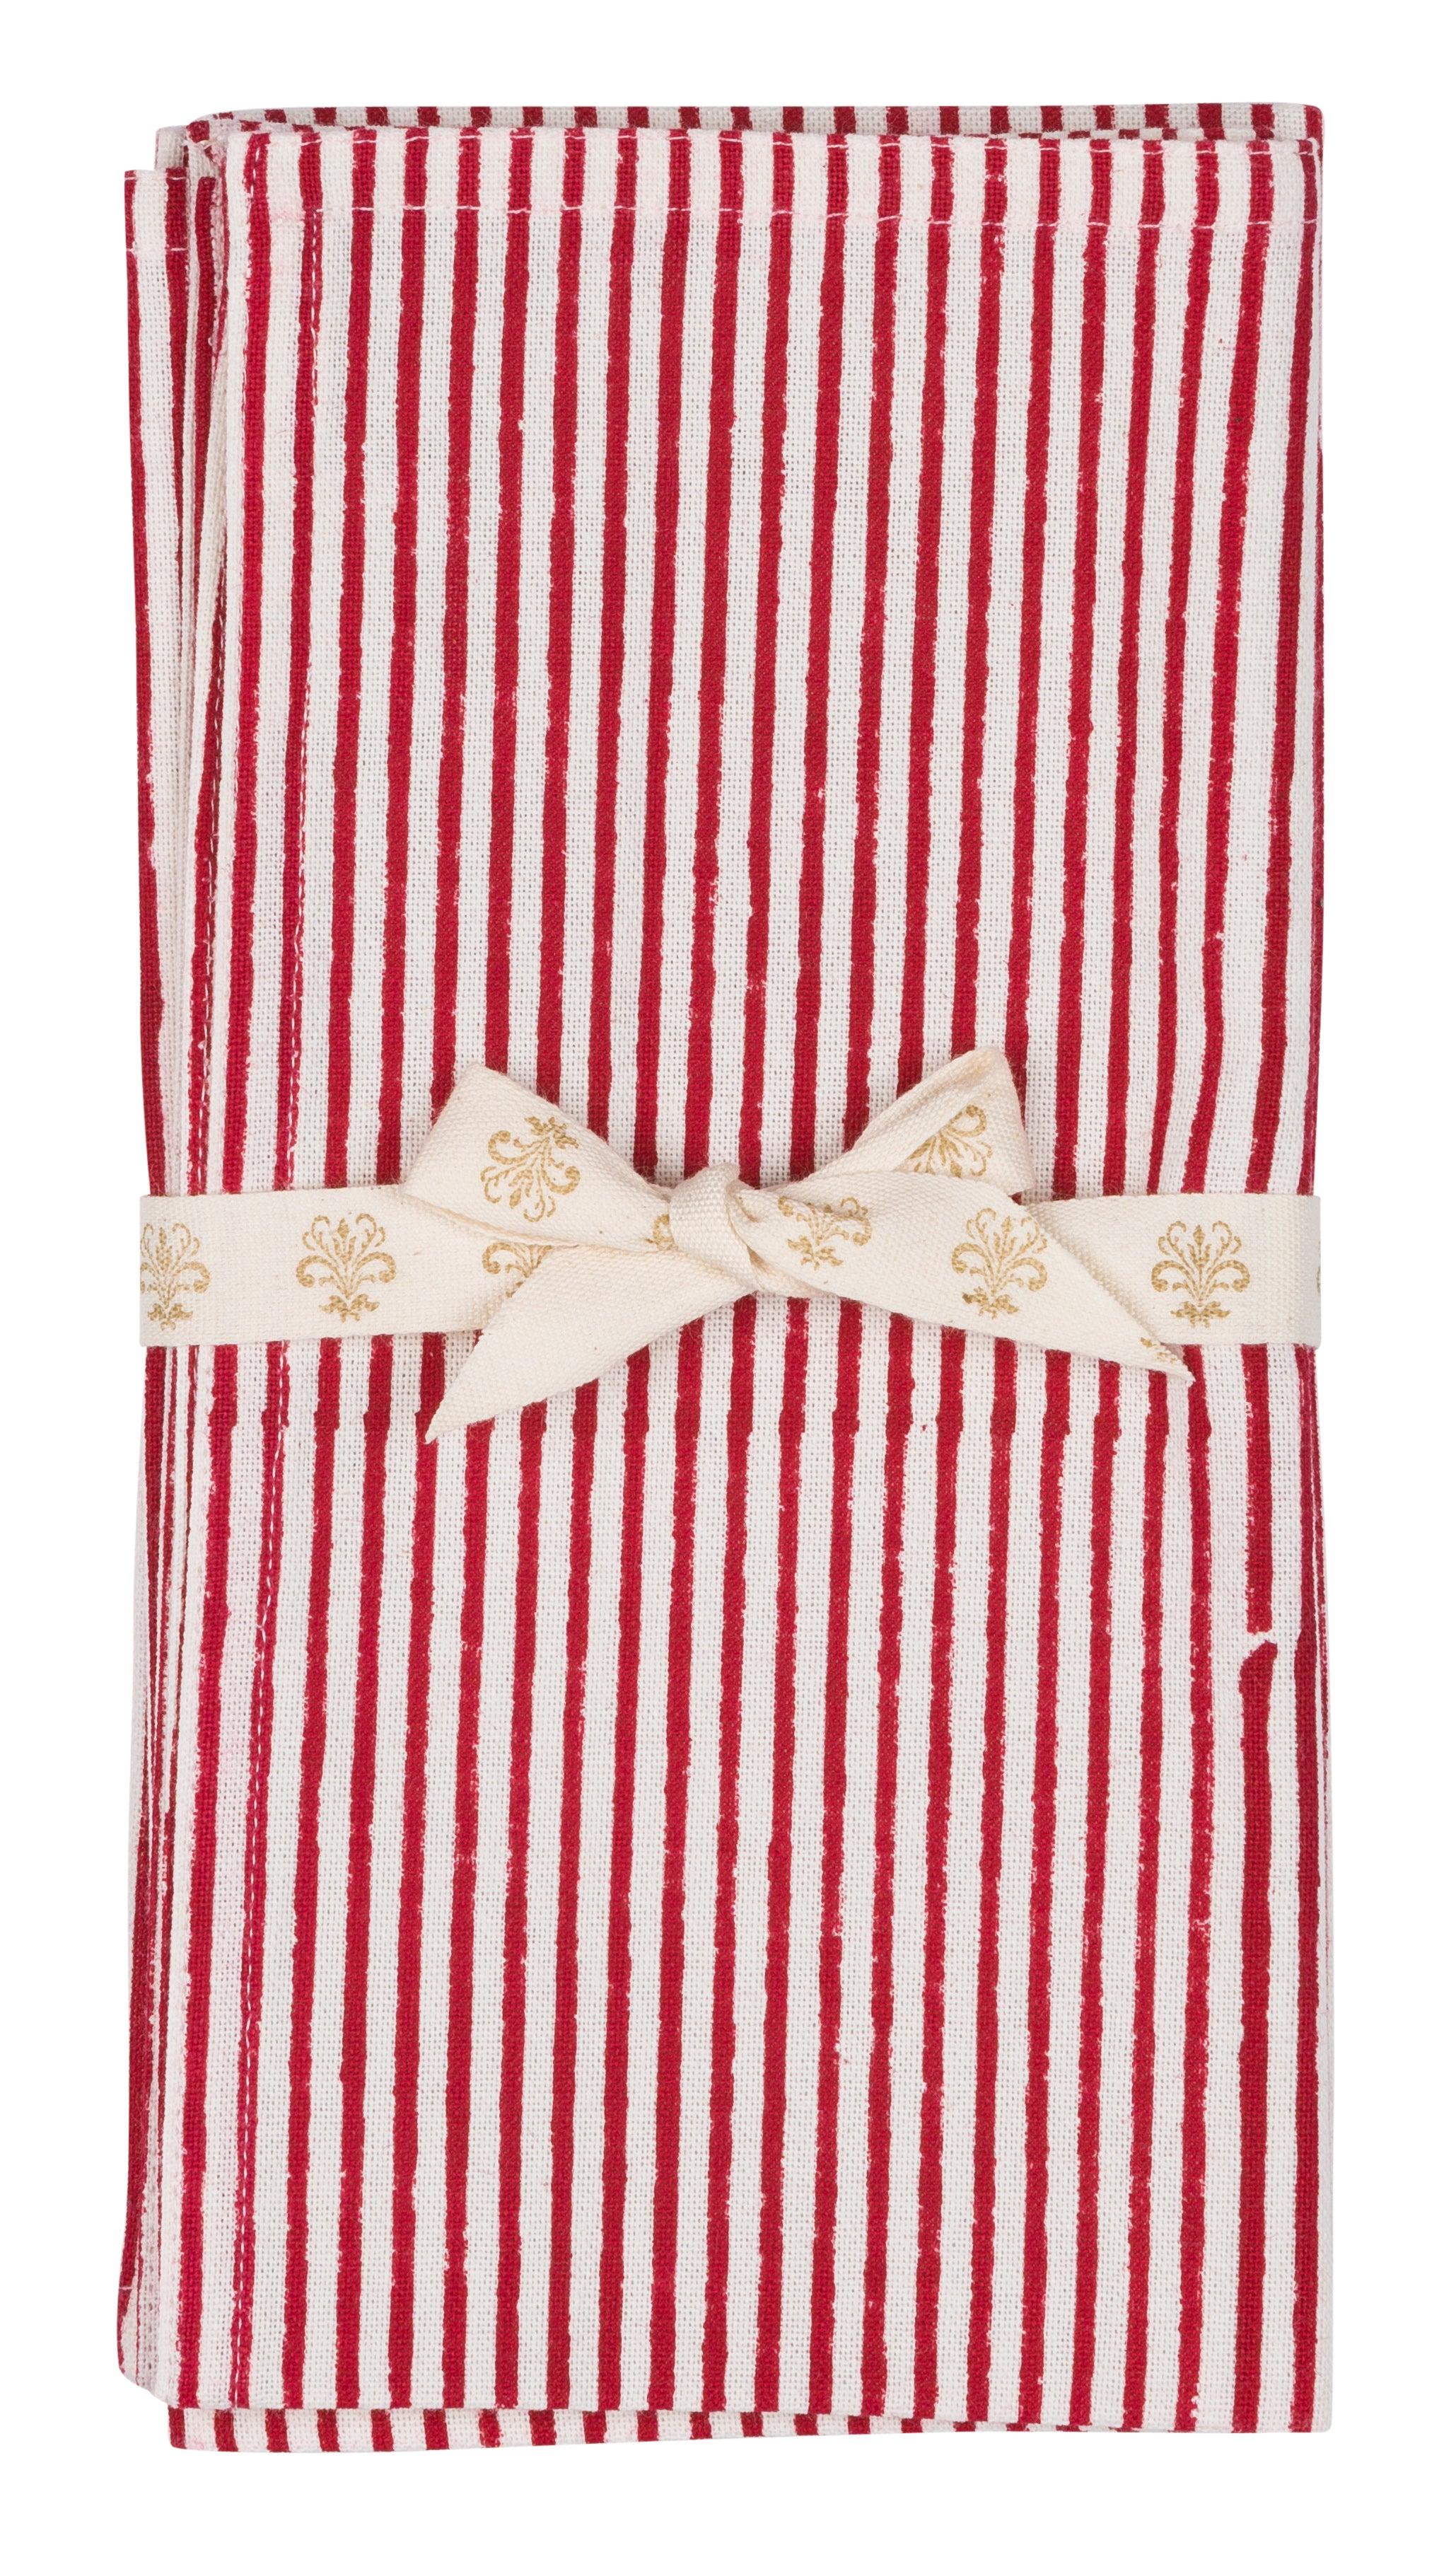 Stripe Napkins in Red